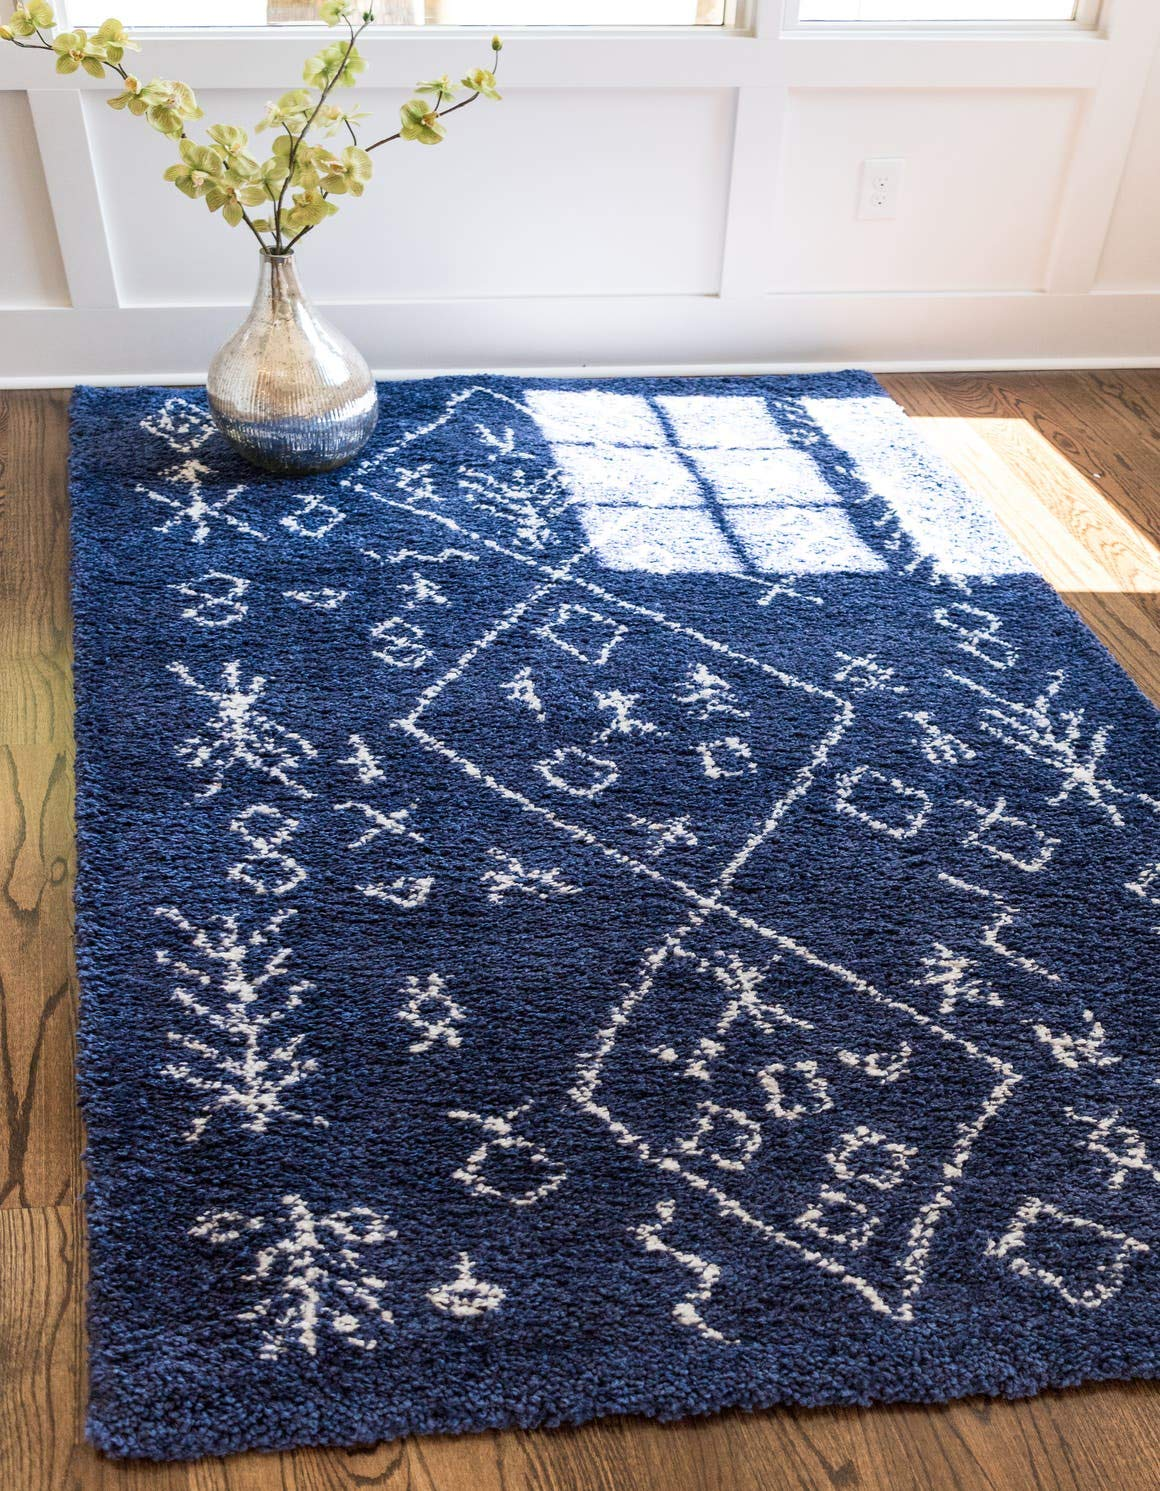 Unique Loom Rabat Shag Collection Tribal Moroccan Nomad Plush Navy Blue Area Rug 5 0 x 8 0